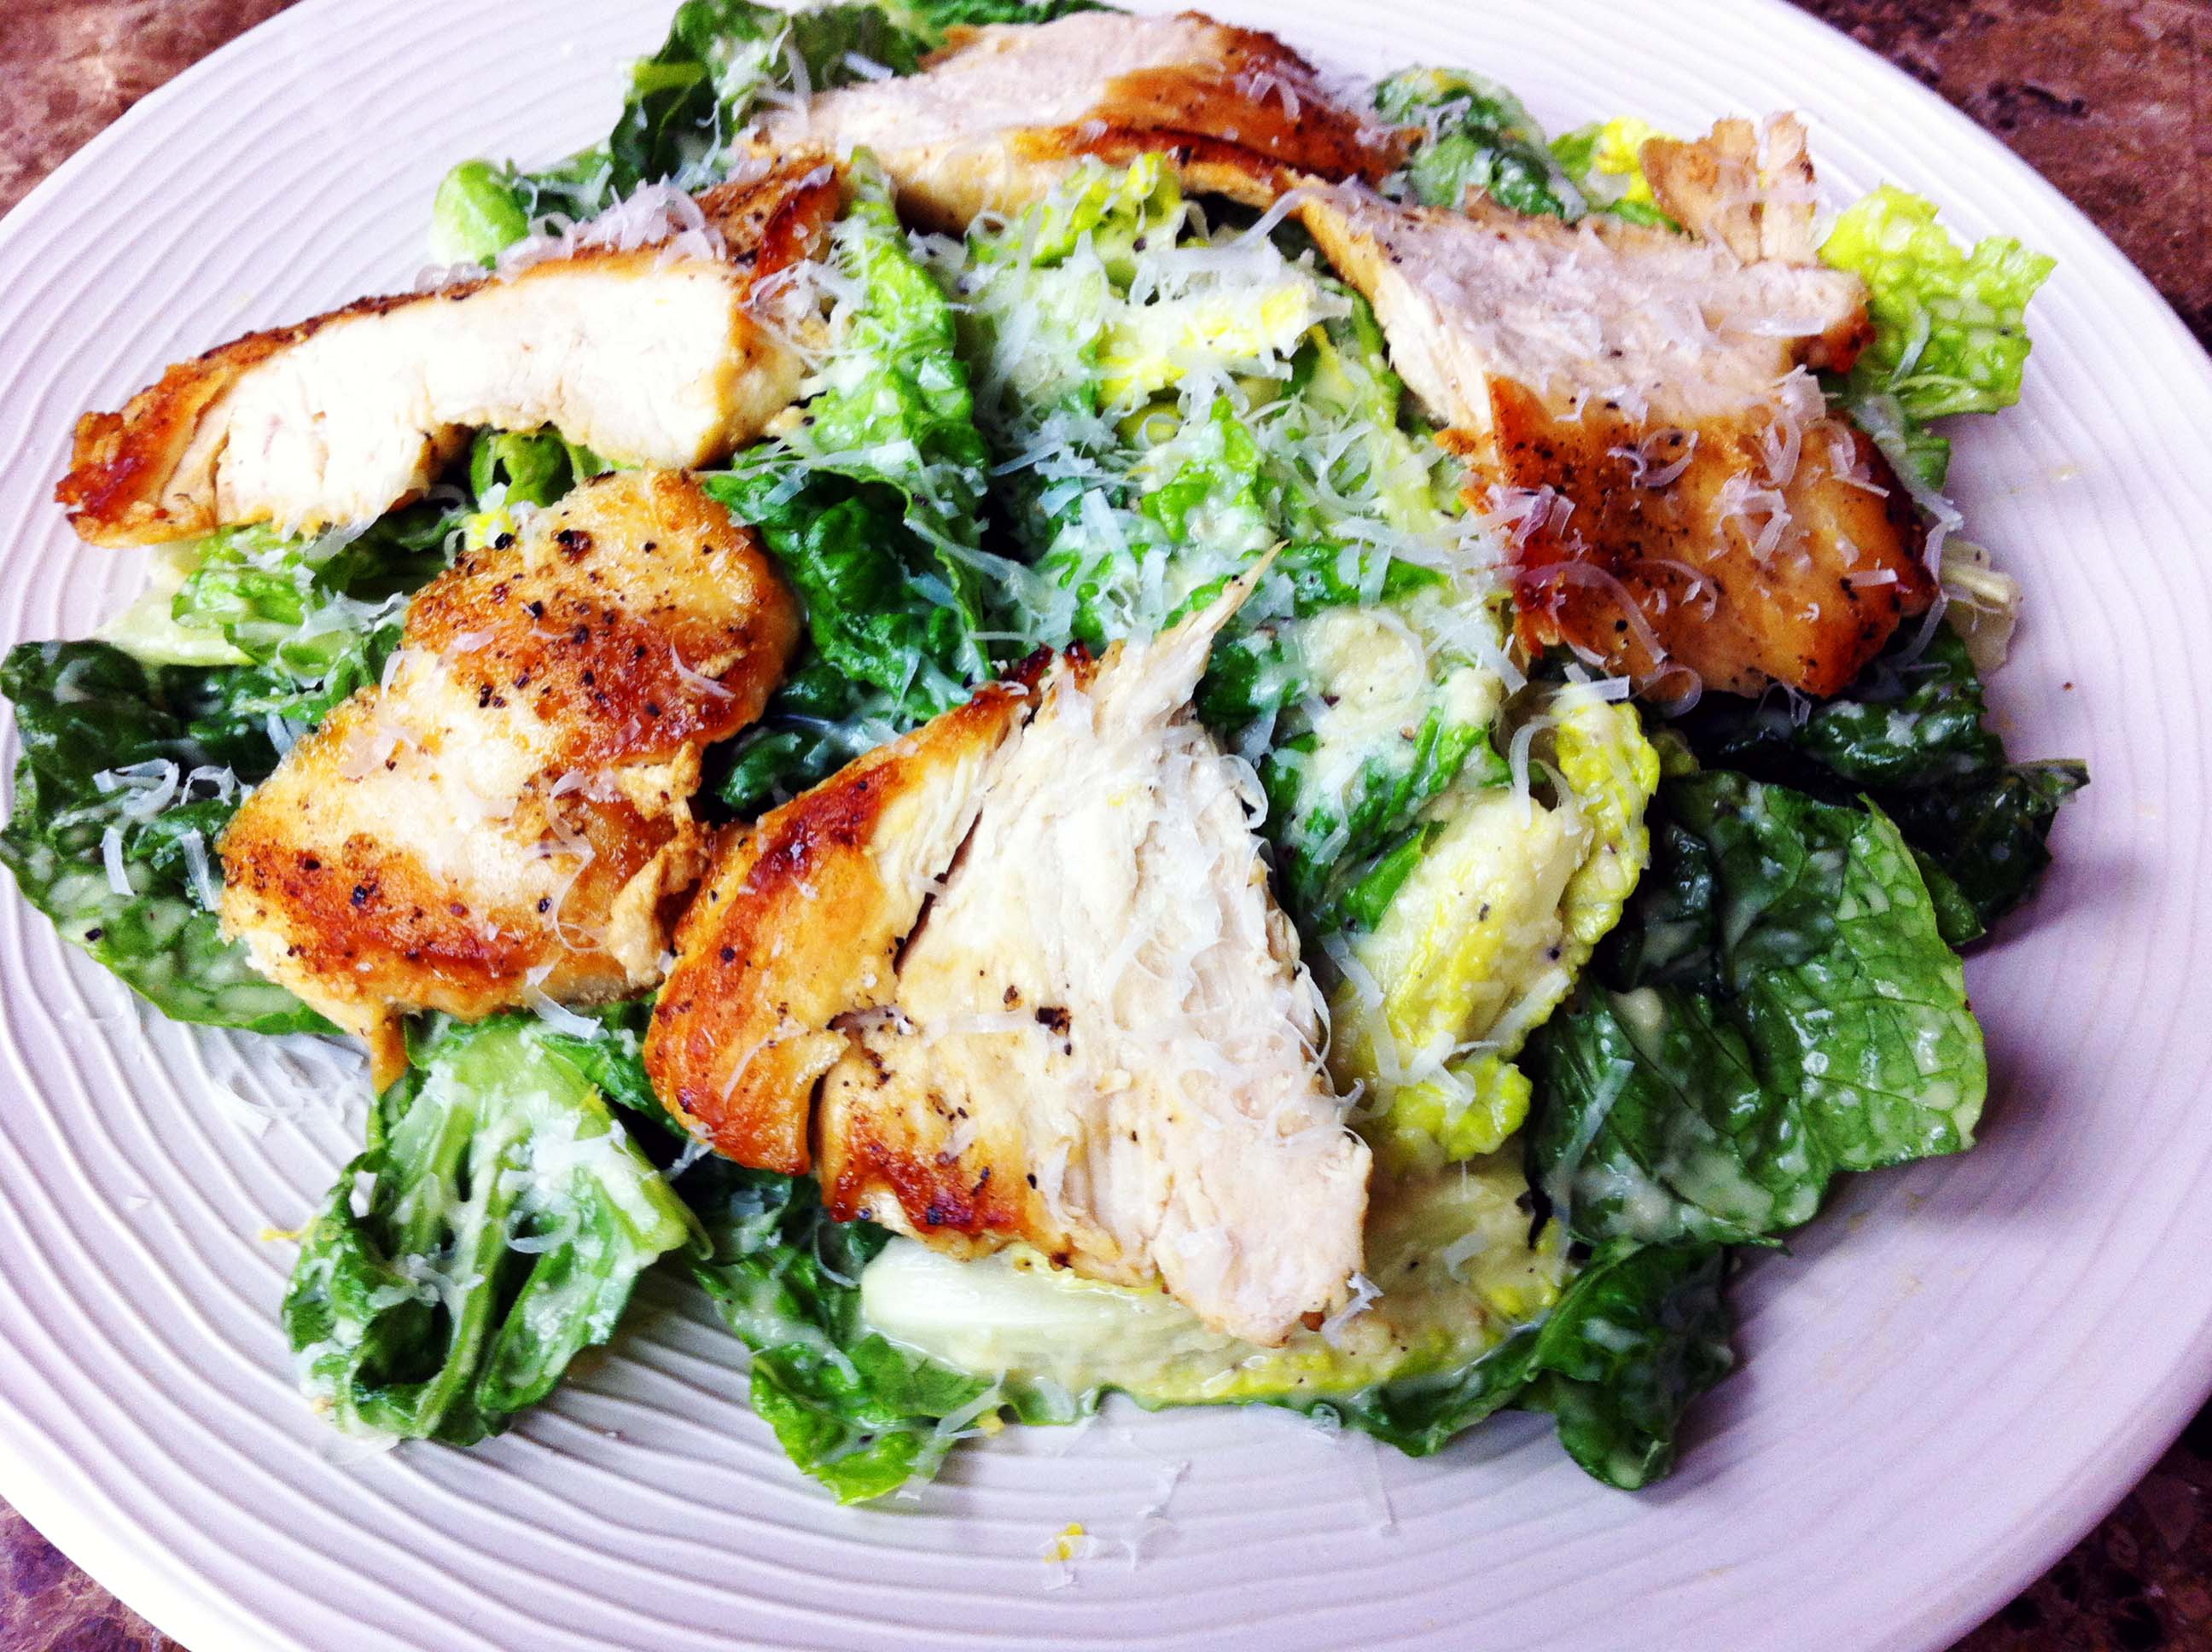 How to prepare a salad with chicken